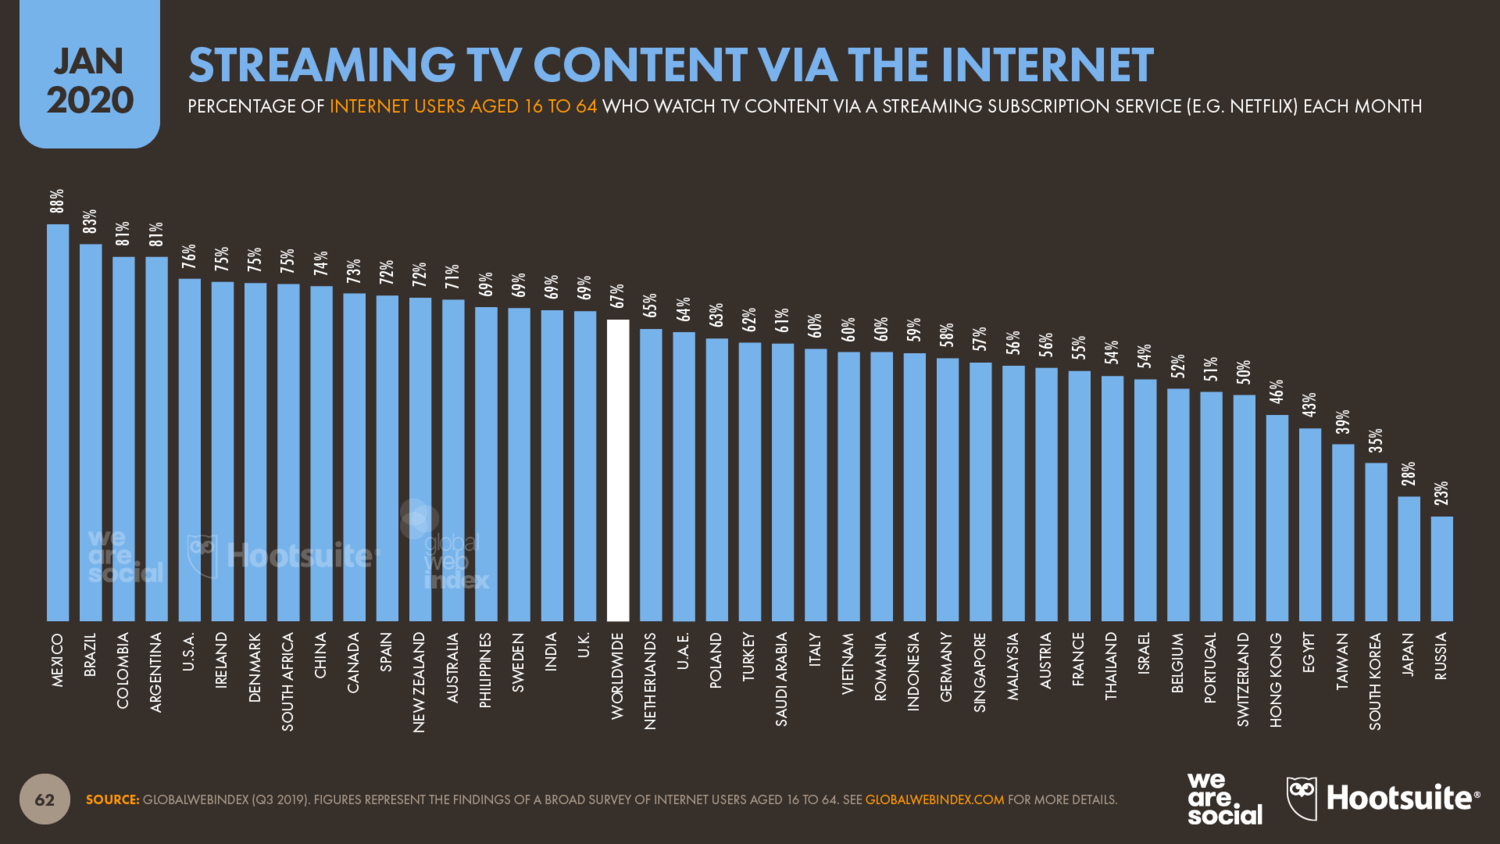 Percentage+of+Internet+Users+Who+Stream+TV+Content+Over+the+Internet+January+2020+DataReportal